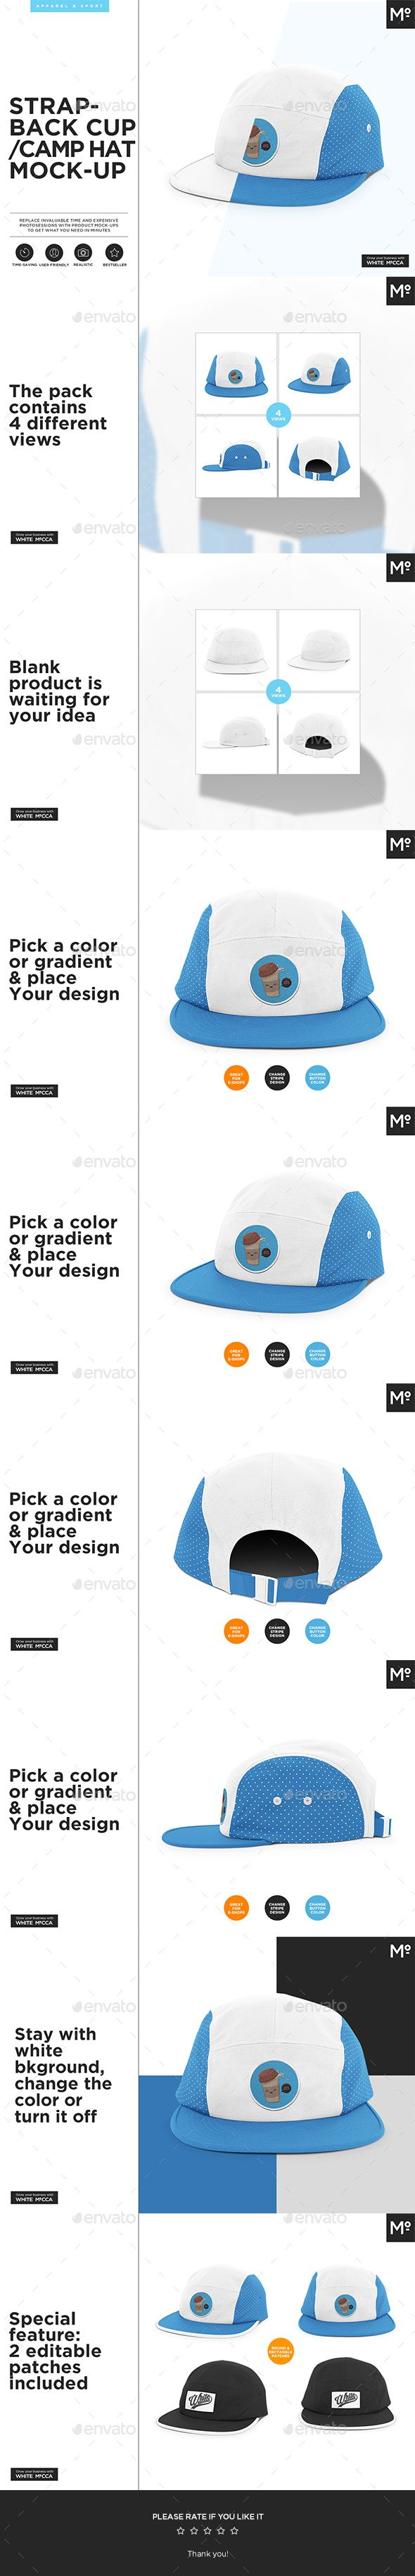 Strapback  Cap / Camp Hat  Mock-up - Miscellaneous Product Mock-Ups